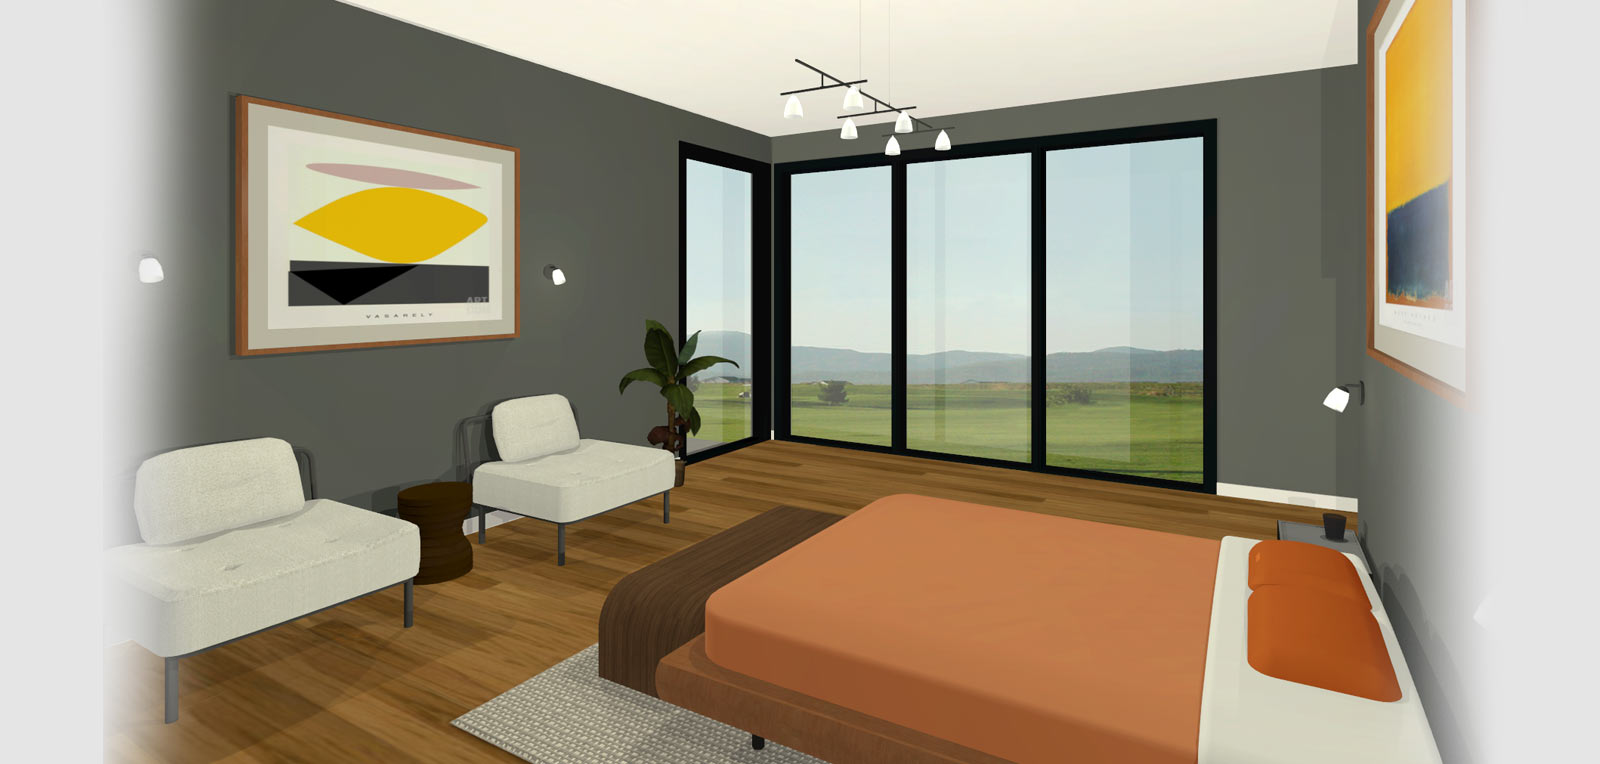 Home designer interior design software Pic of interior design home